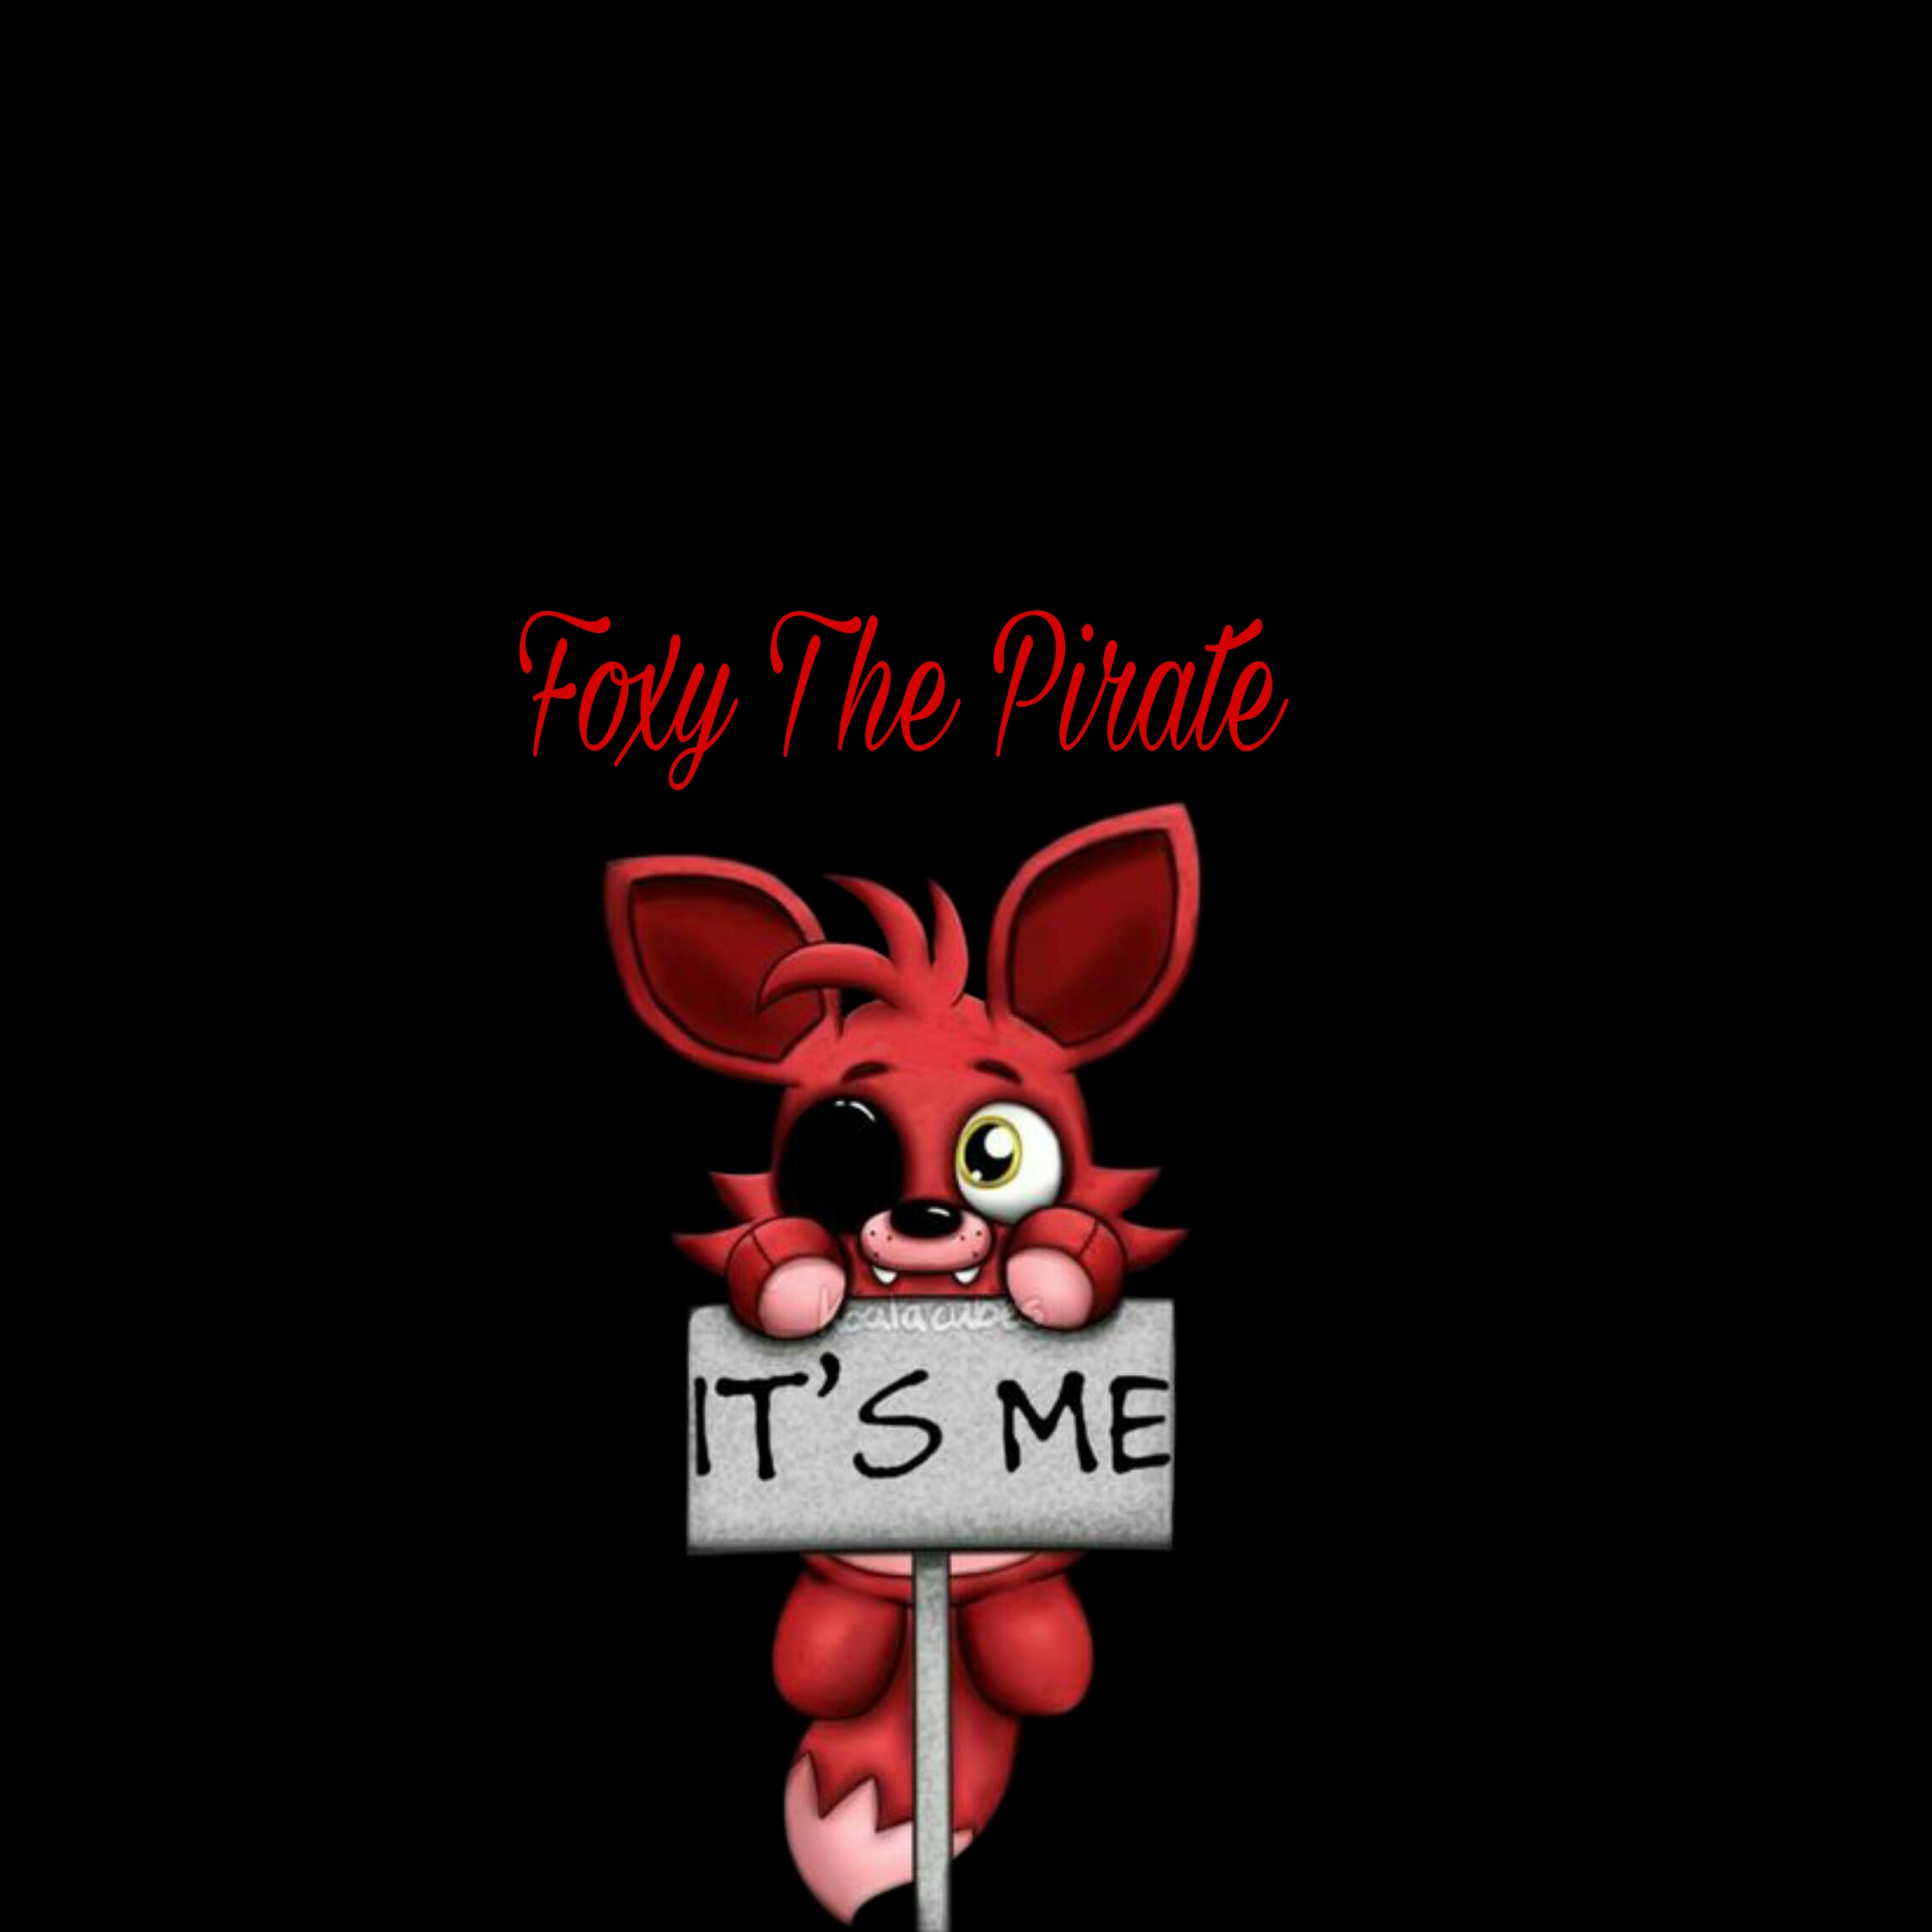 Foxythepirate Fnaf Wallpaper Fnaf Foxy It S Me 2289x2289 Download Hd Wallpaper Wallpapertip